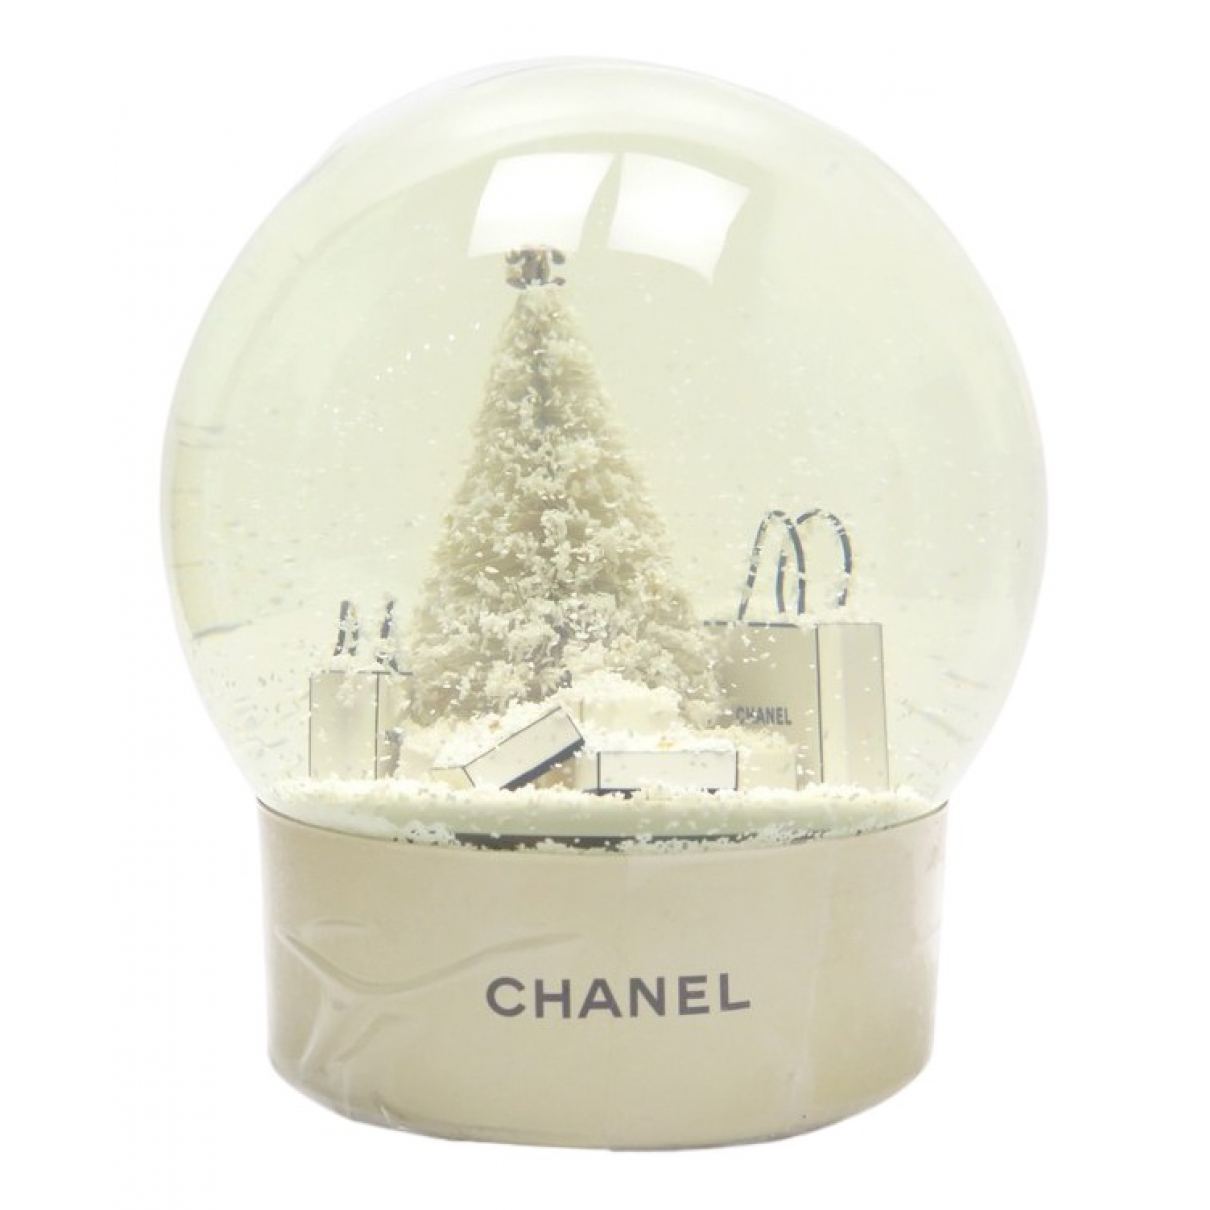 Chanel N Beige Glass Home decor for Life & Living N